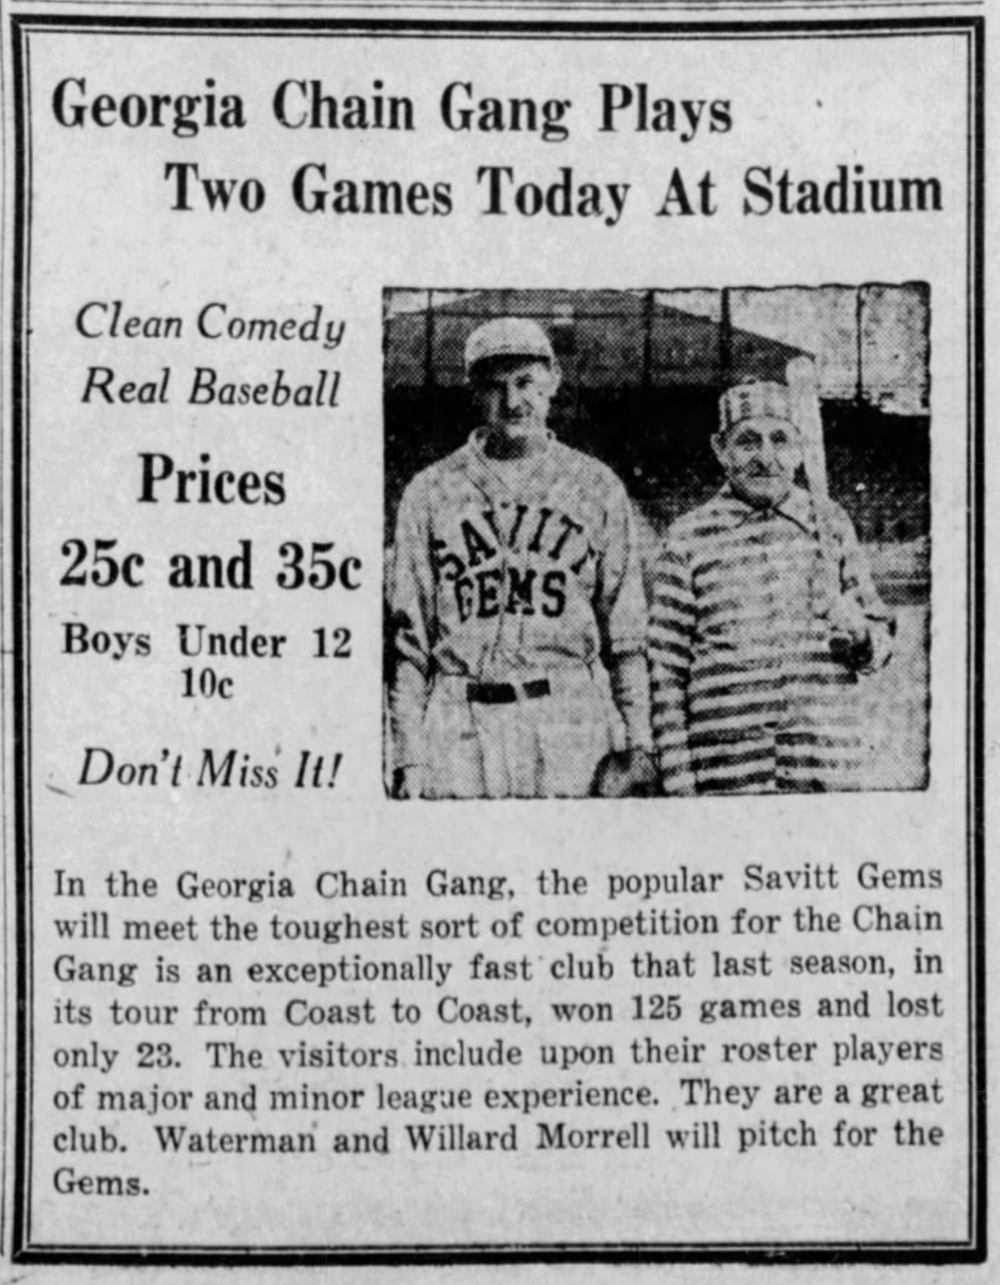 Savitt Gems vs. Georgia Chain Gang, 1933.